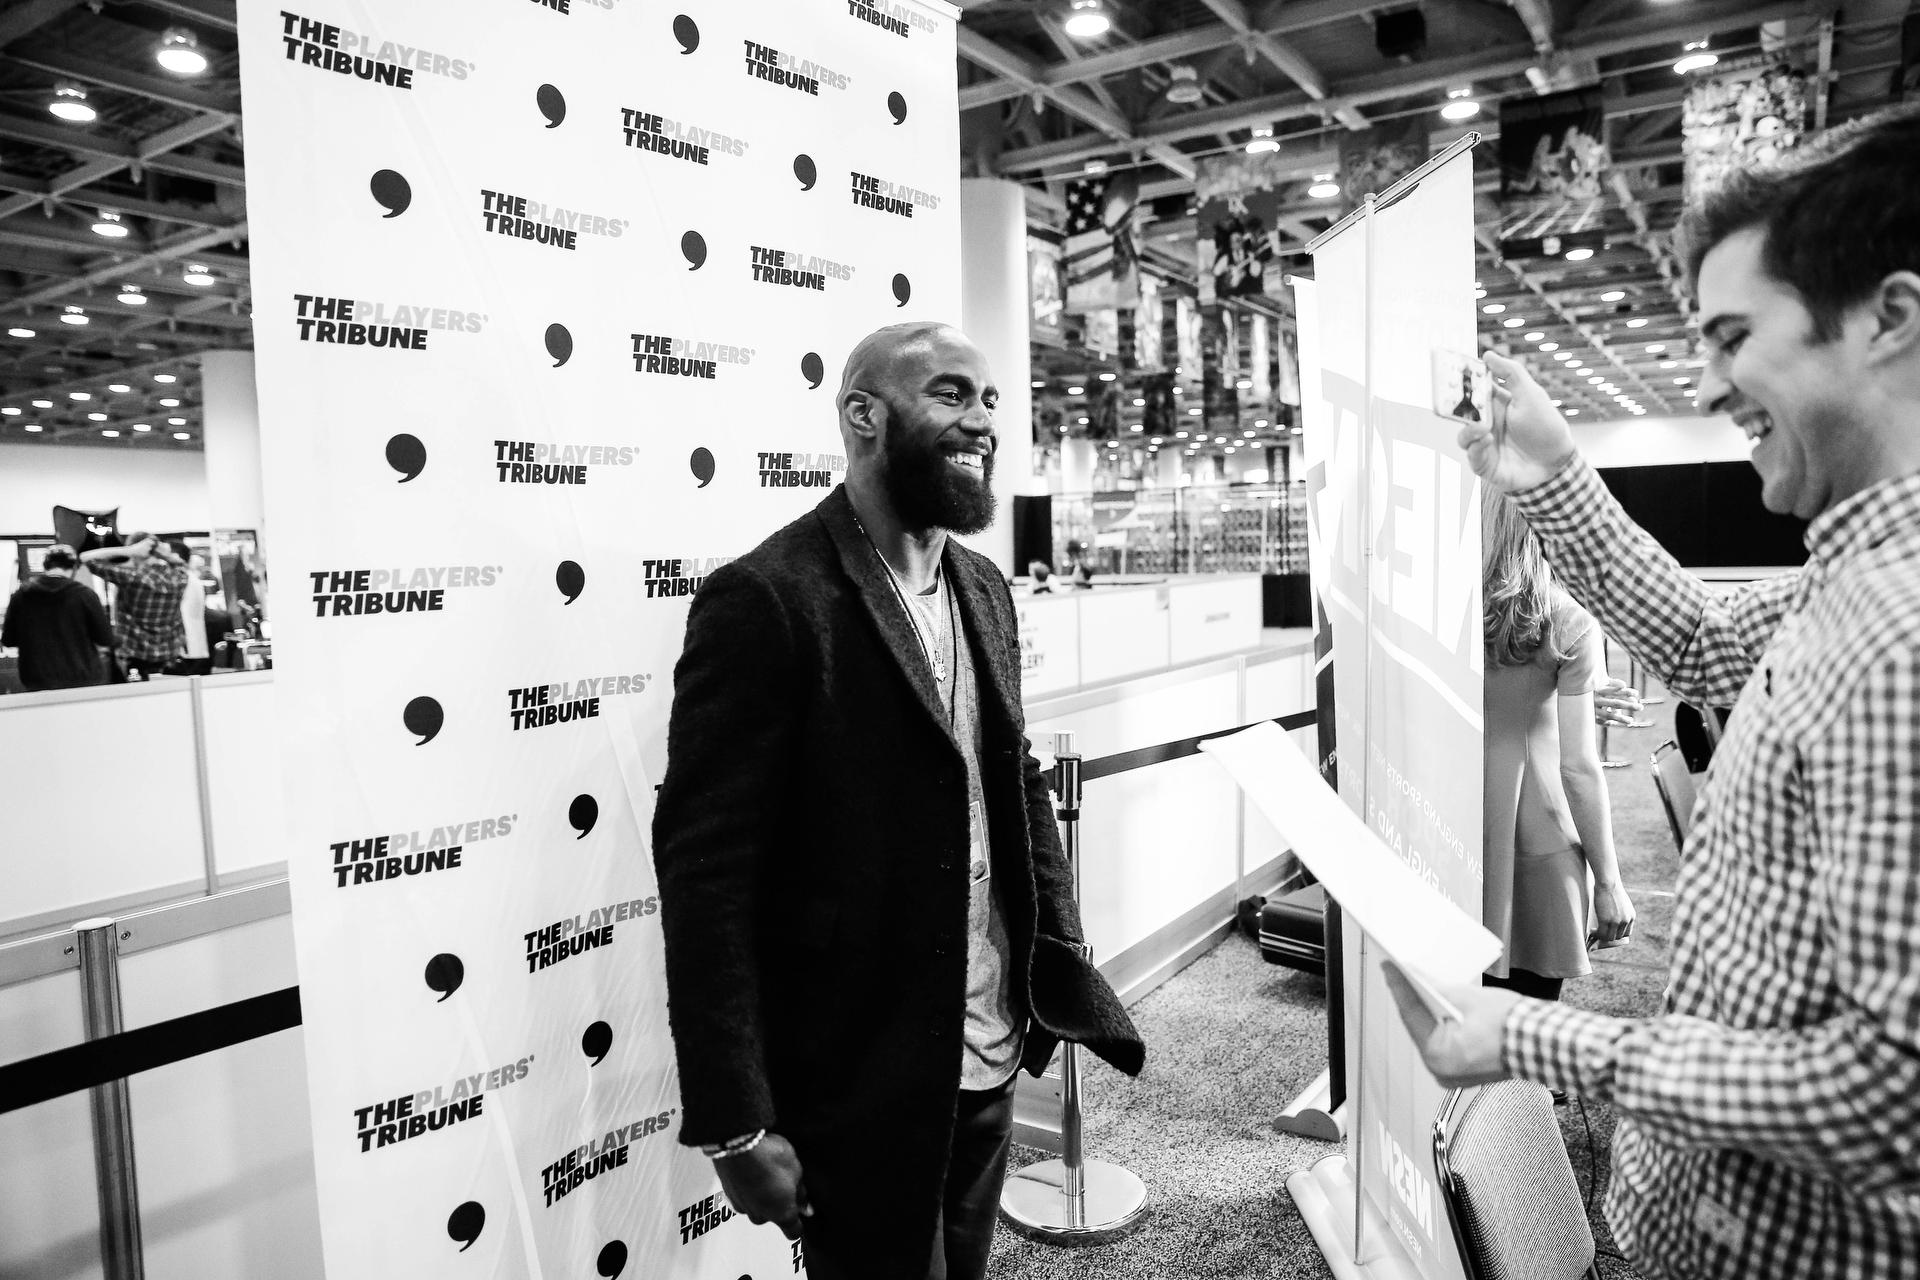 Philadelphia Eagles safety Malcolm Jenkins on the scene.